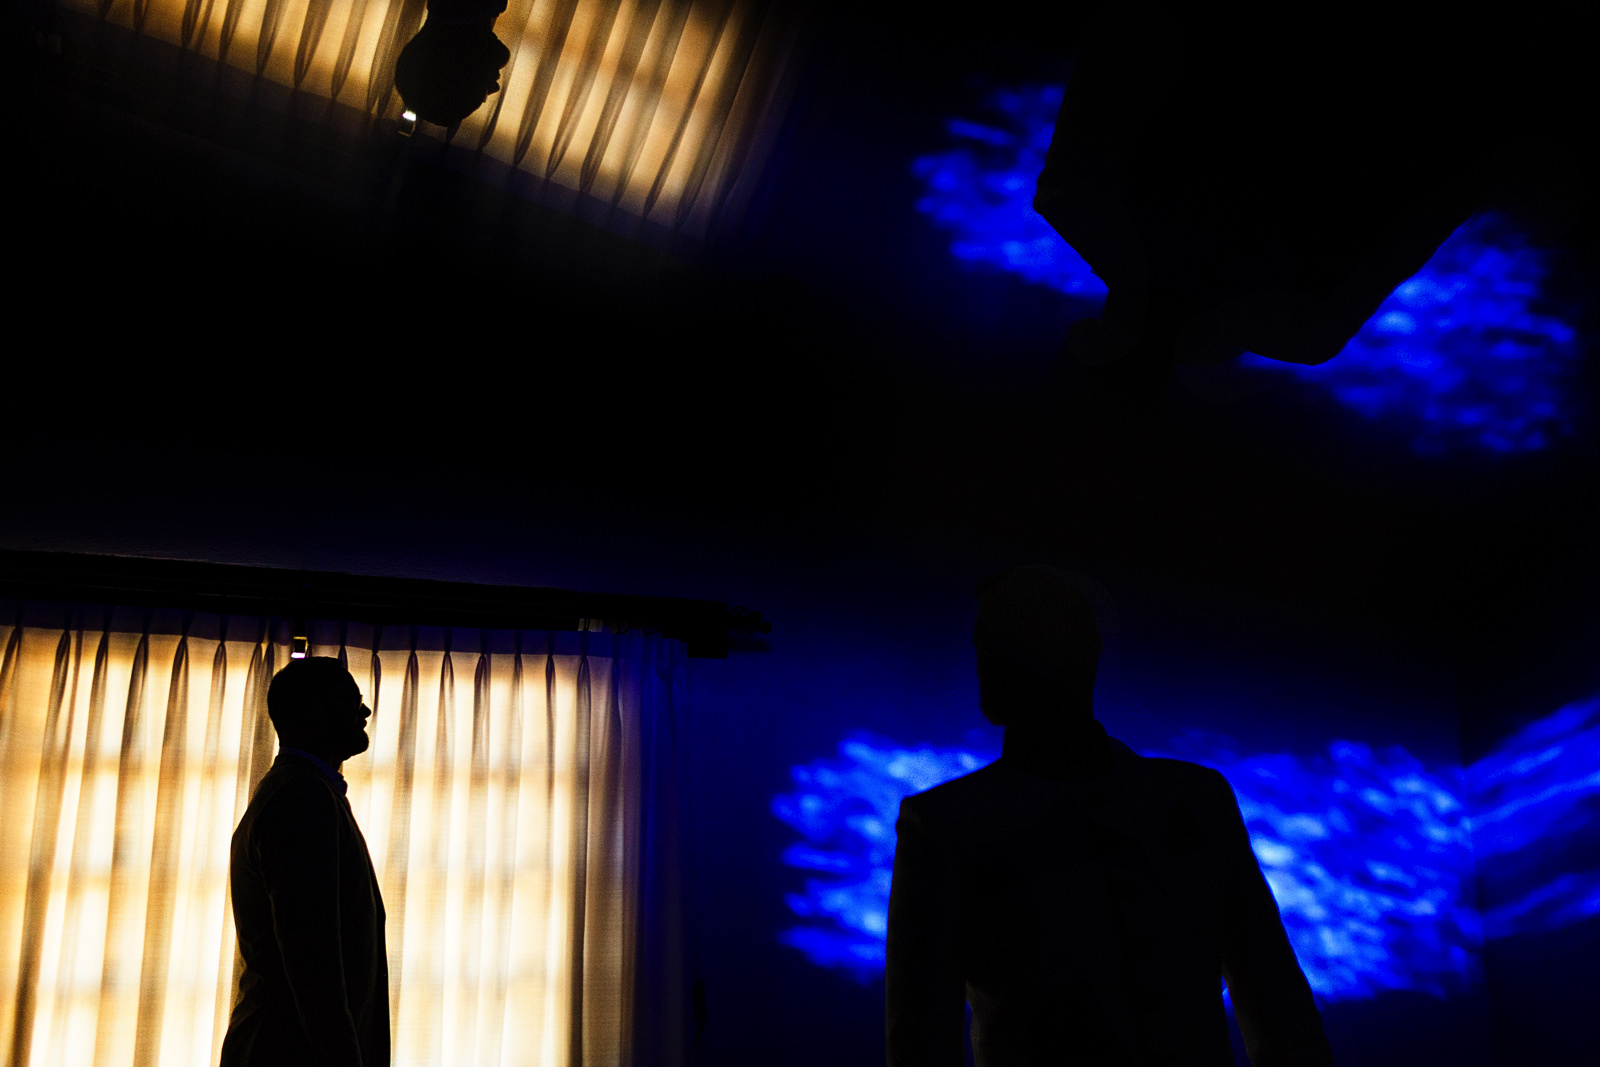 Abstract portrait of gay couple in yellow and blue with silhouettes